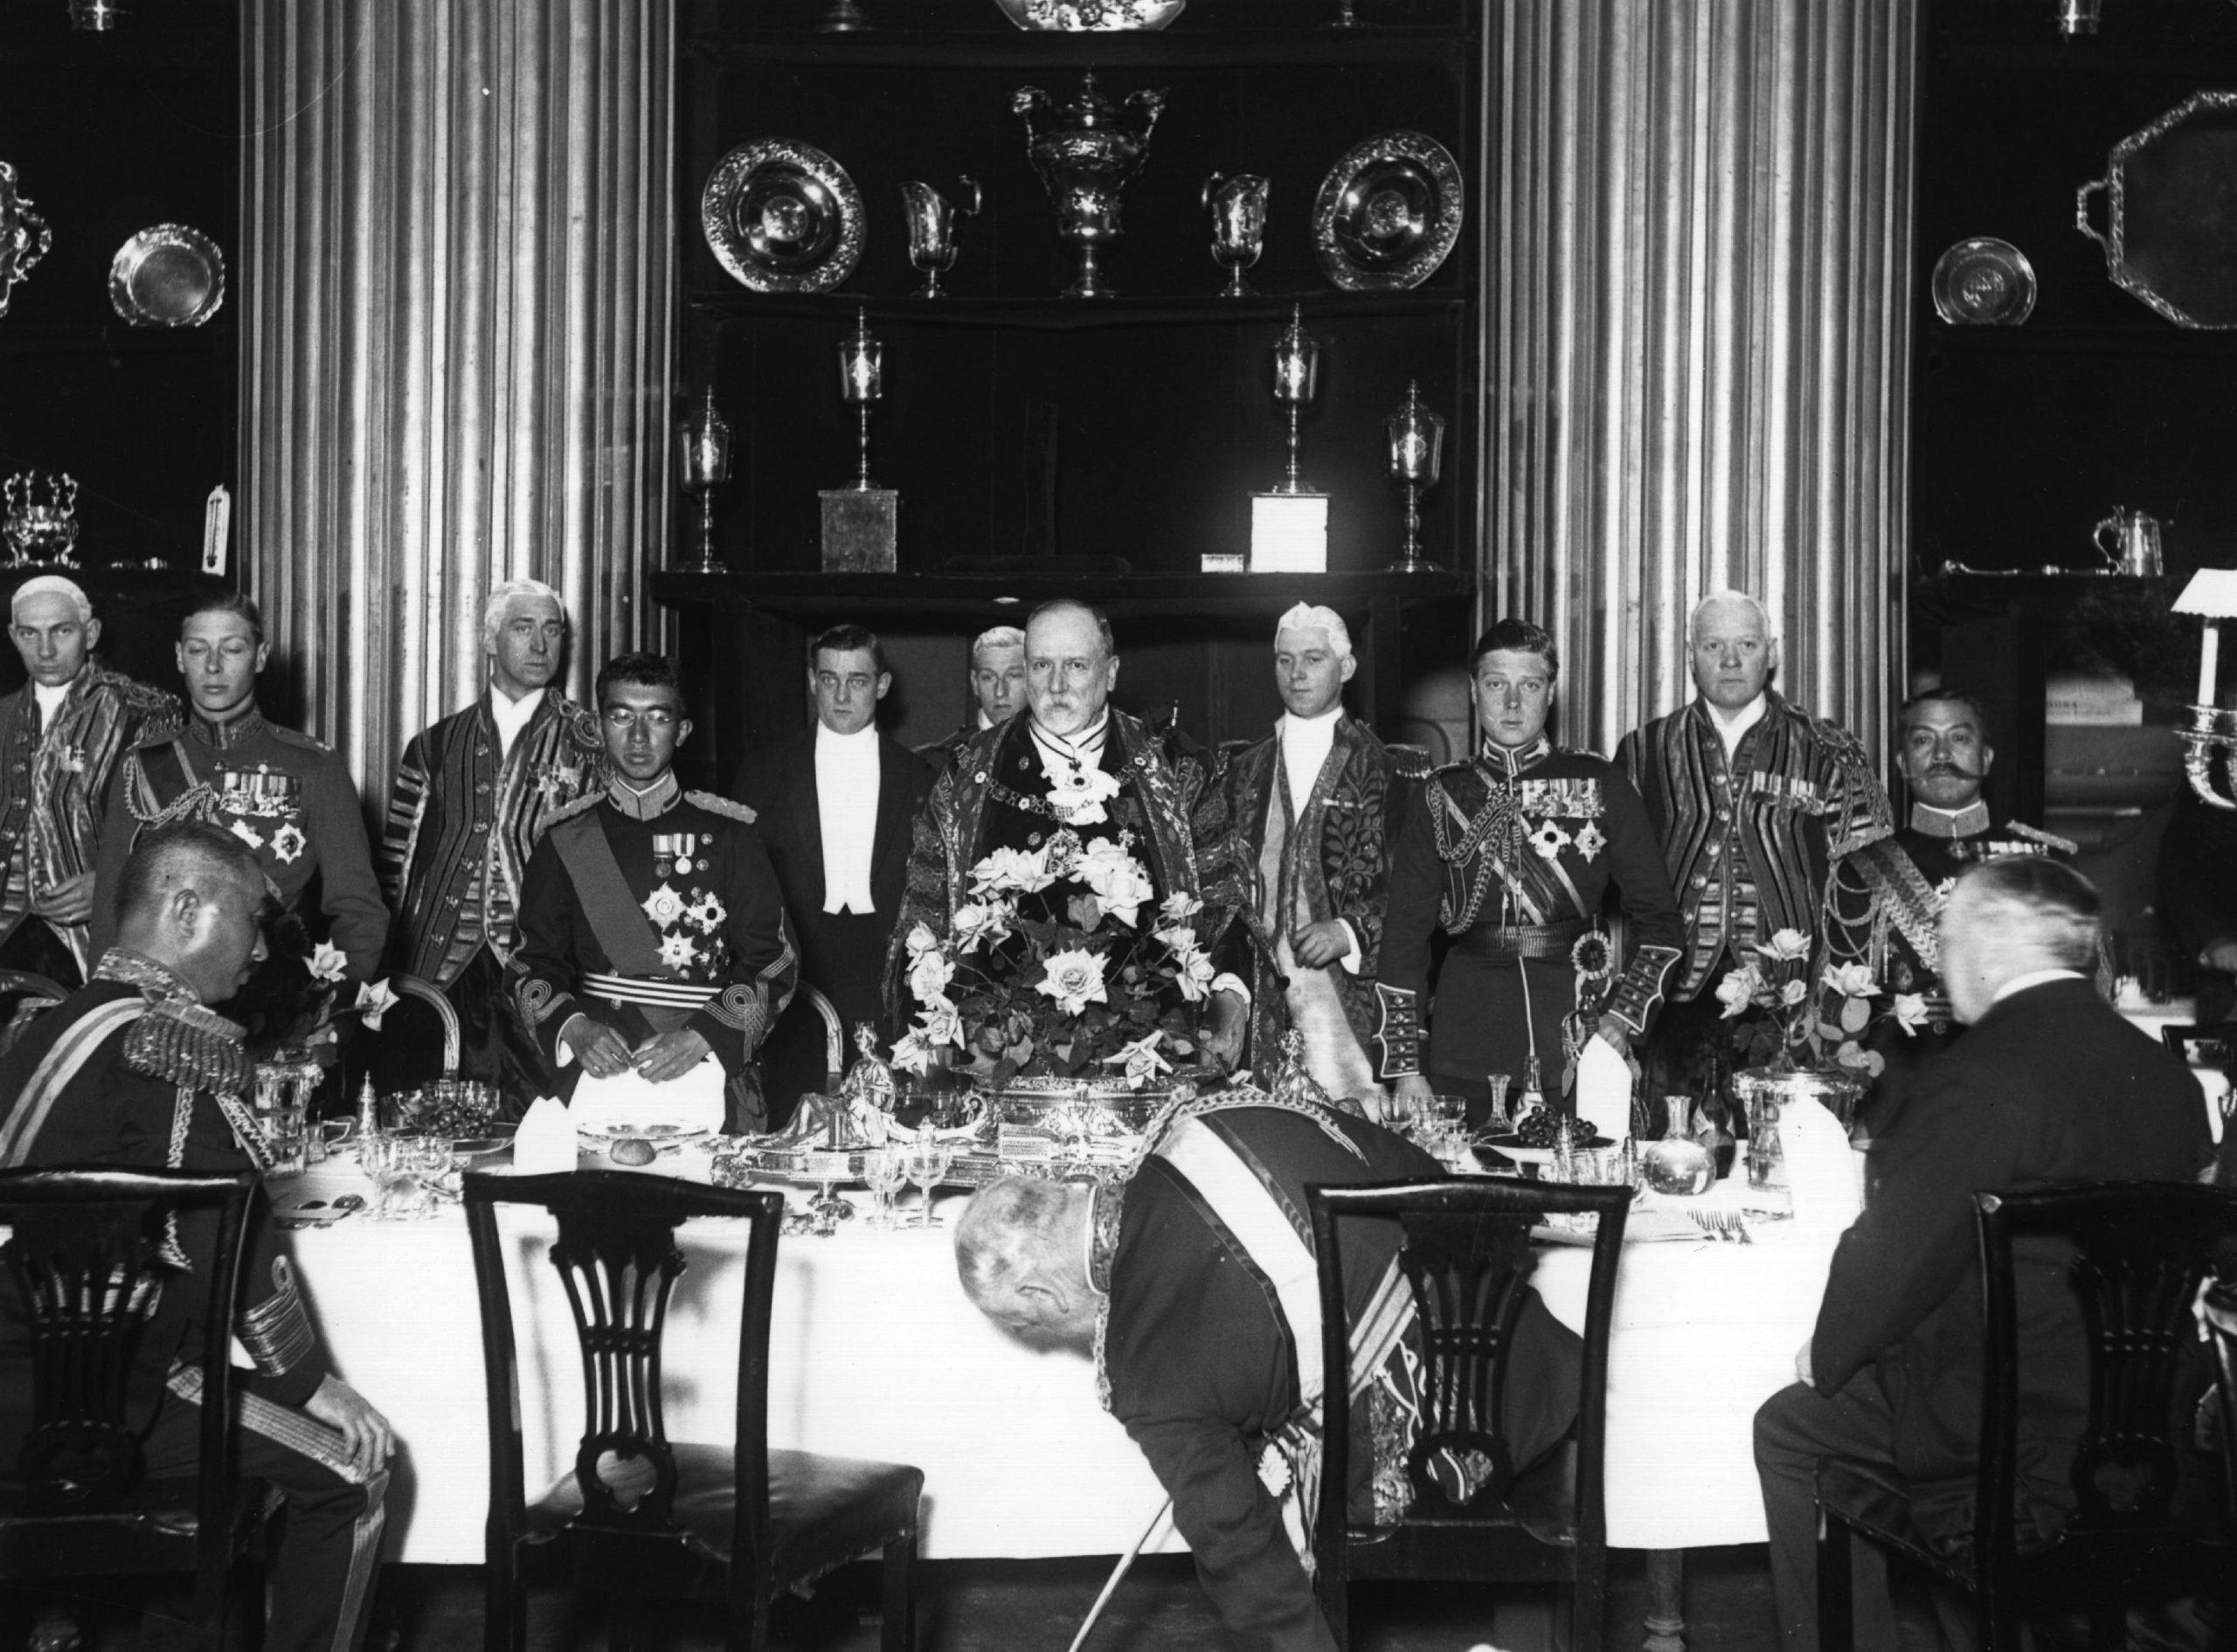 Prince Hirohito lunching at the Mansion House, London, with Edward VIII